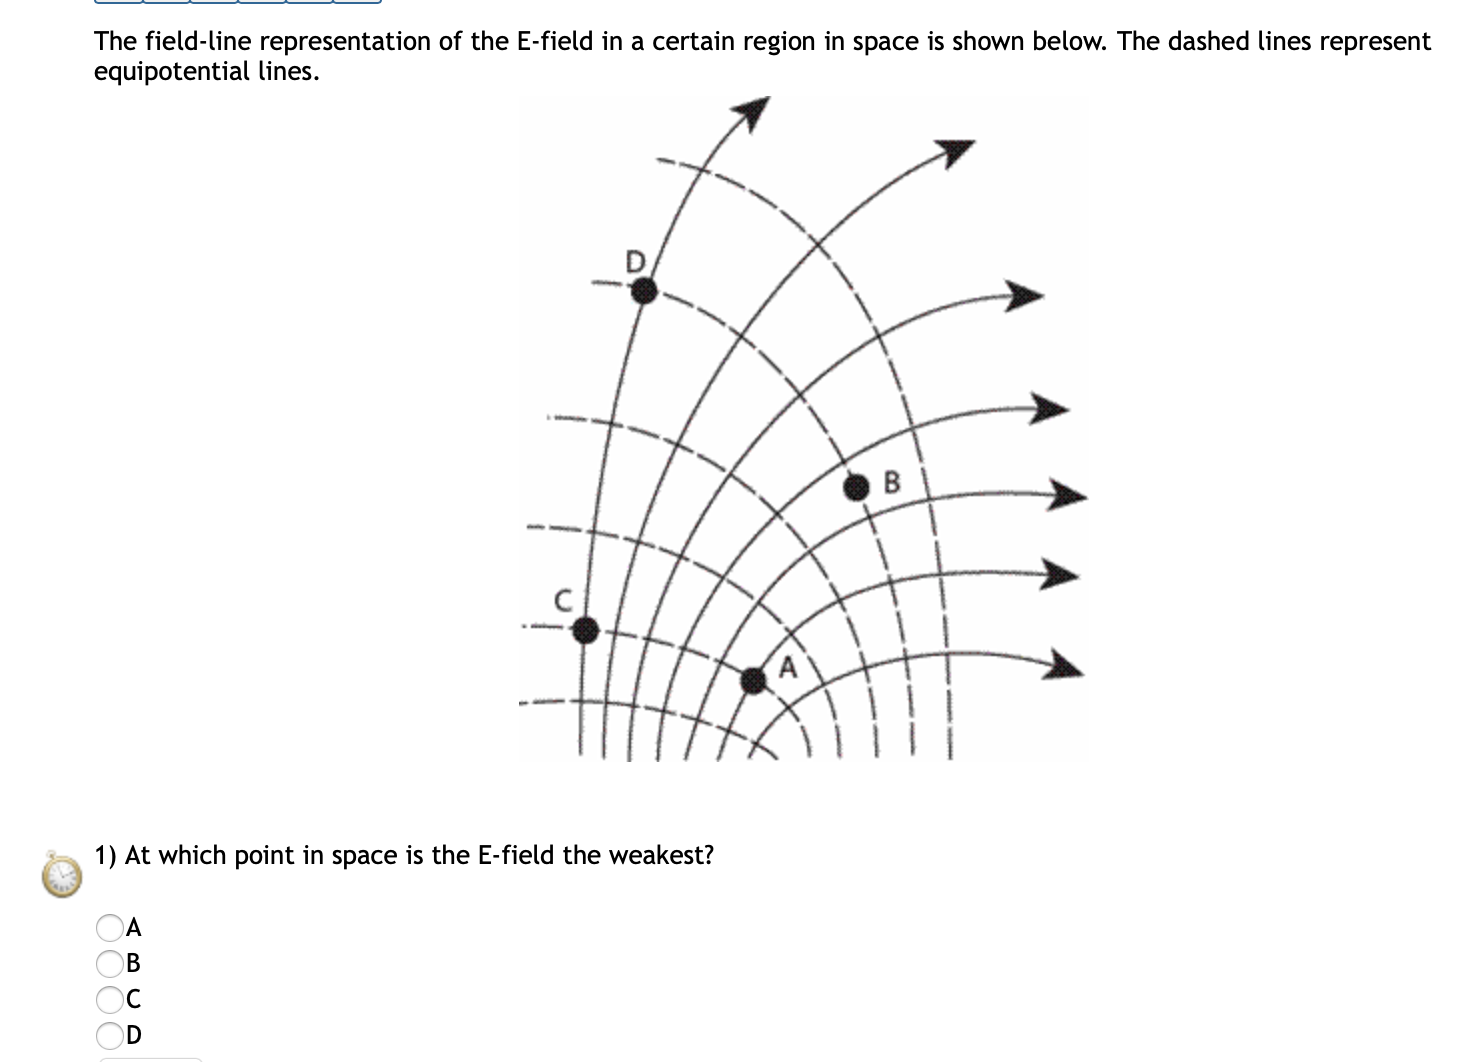 The field-line representation of the E-field in a certain region in space is shown below. The dashed lines represent equipotential lines. 1) At which point in space is the E-field the weakest? OC